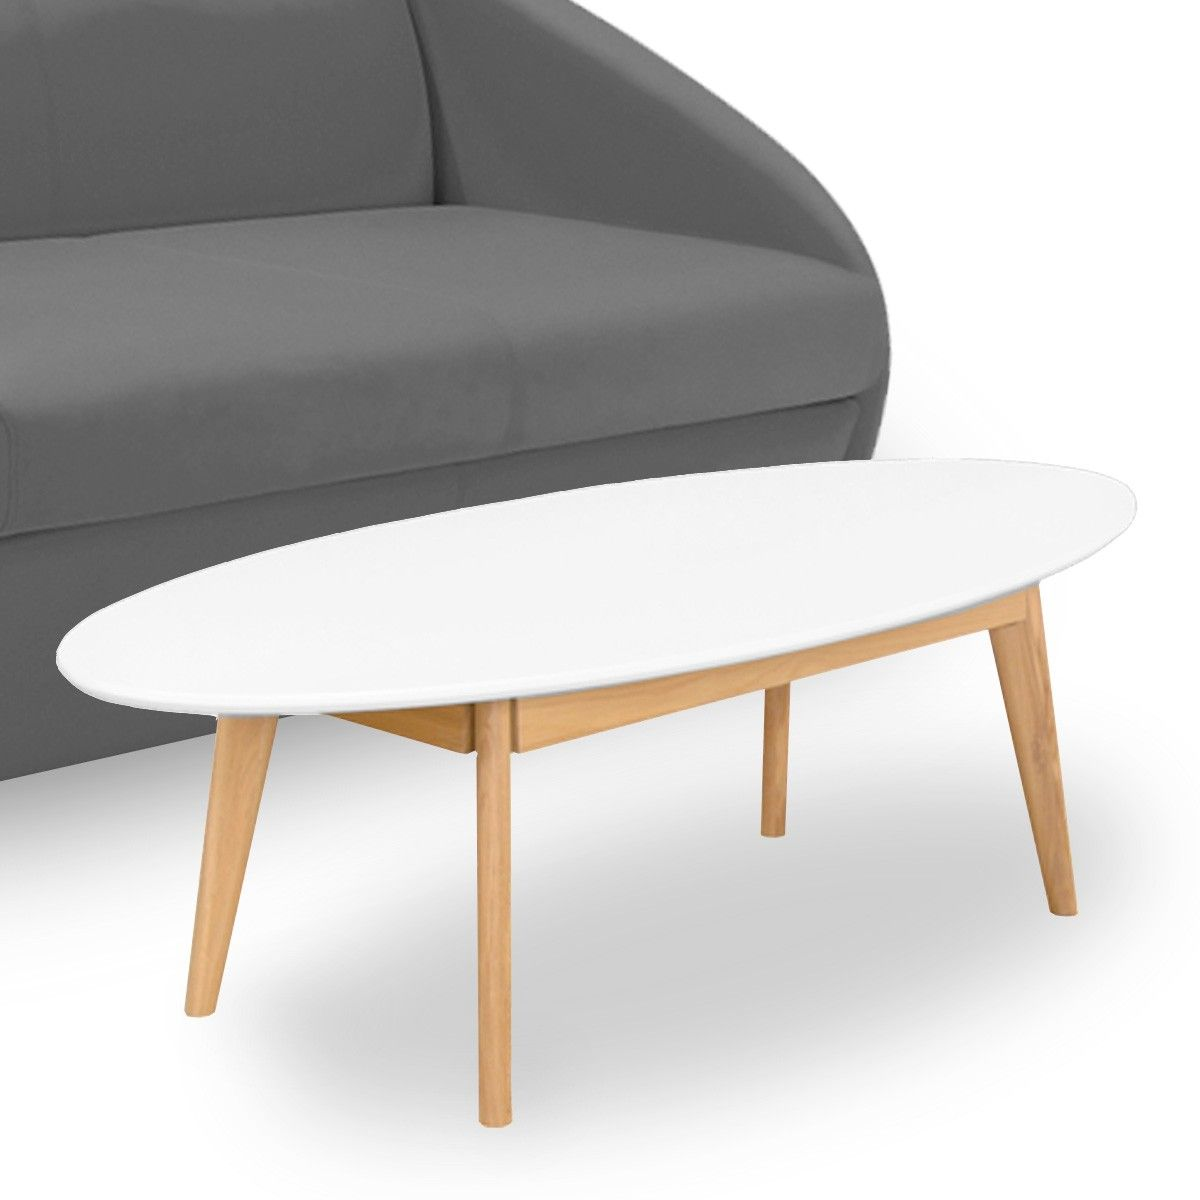 La table basse parfaite pour votre salon rise and shine for Table basse scandinave alinea